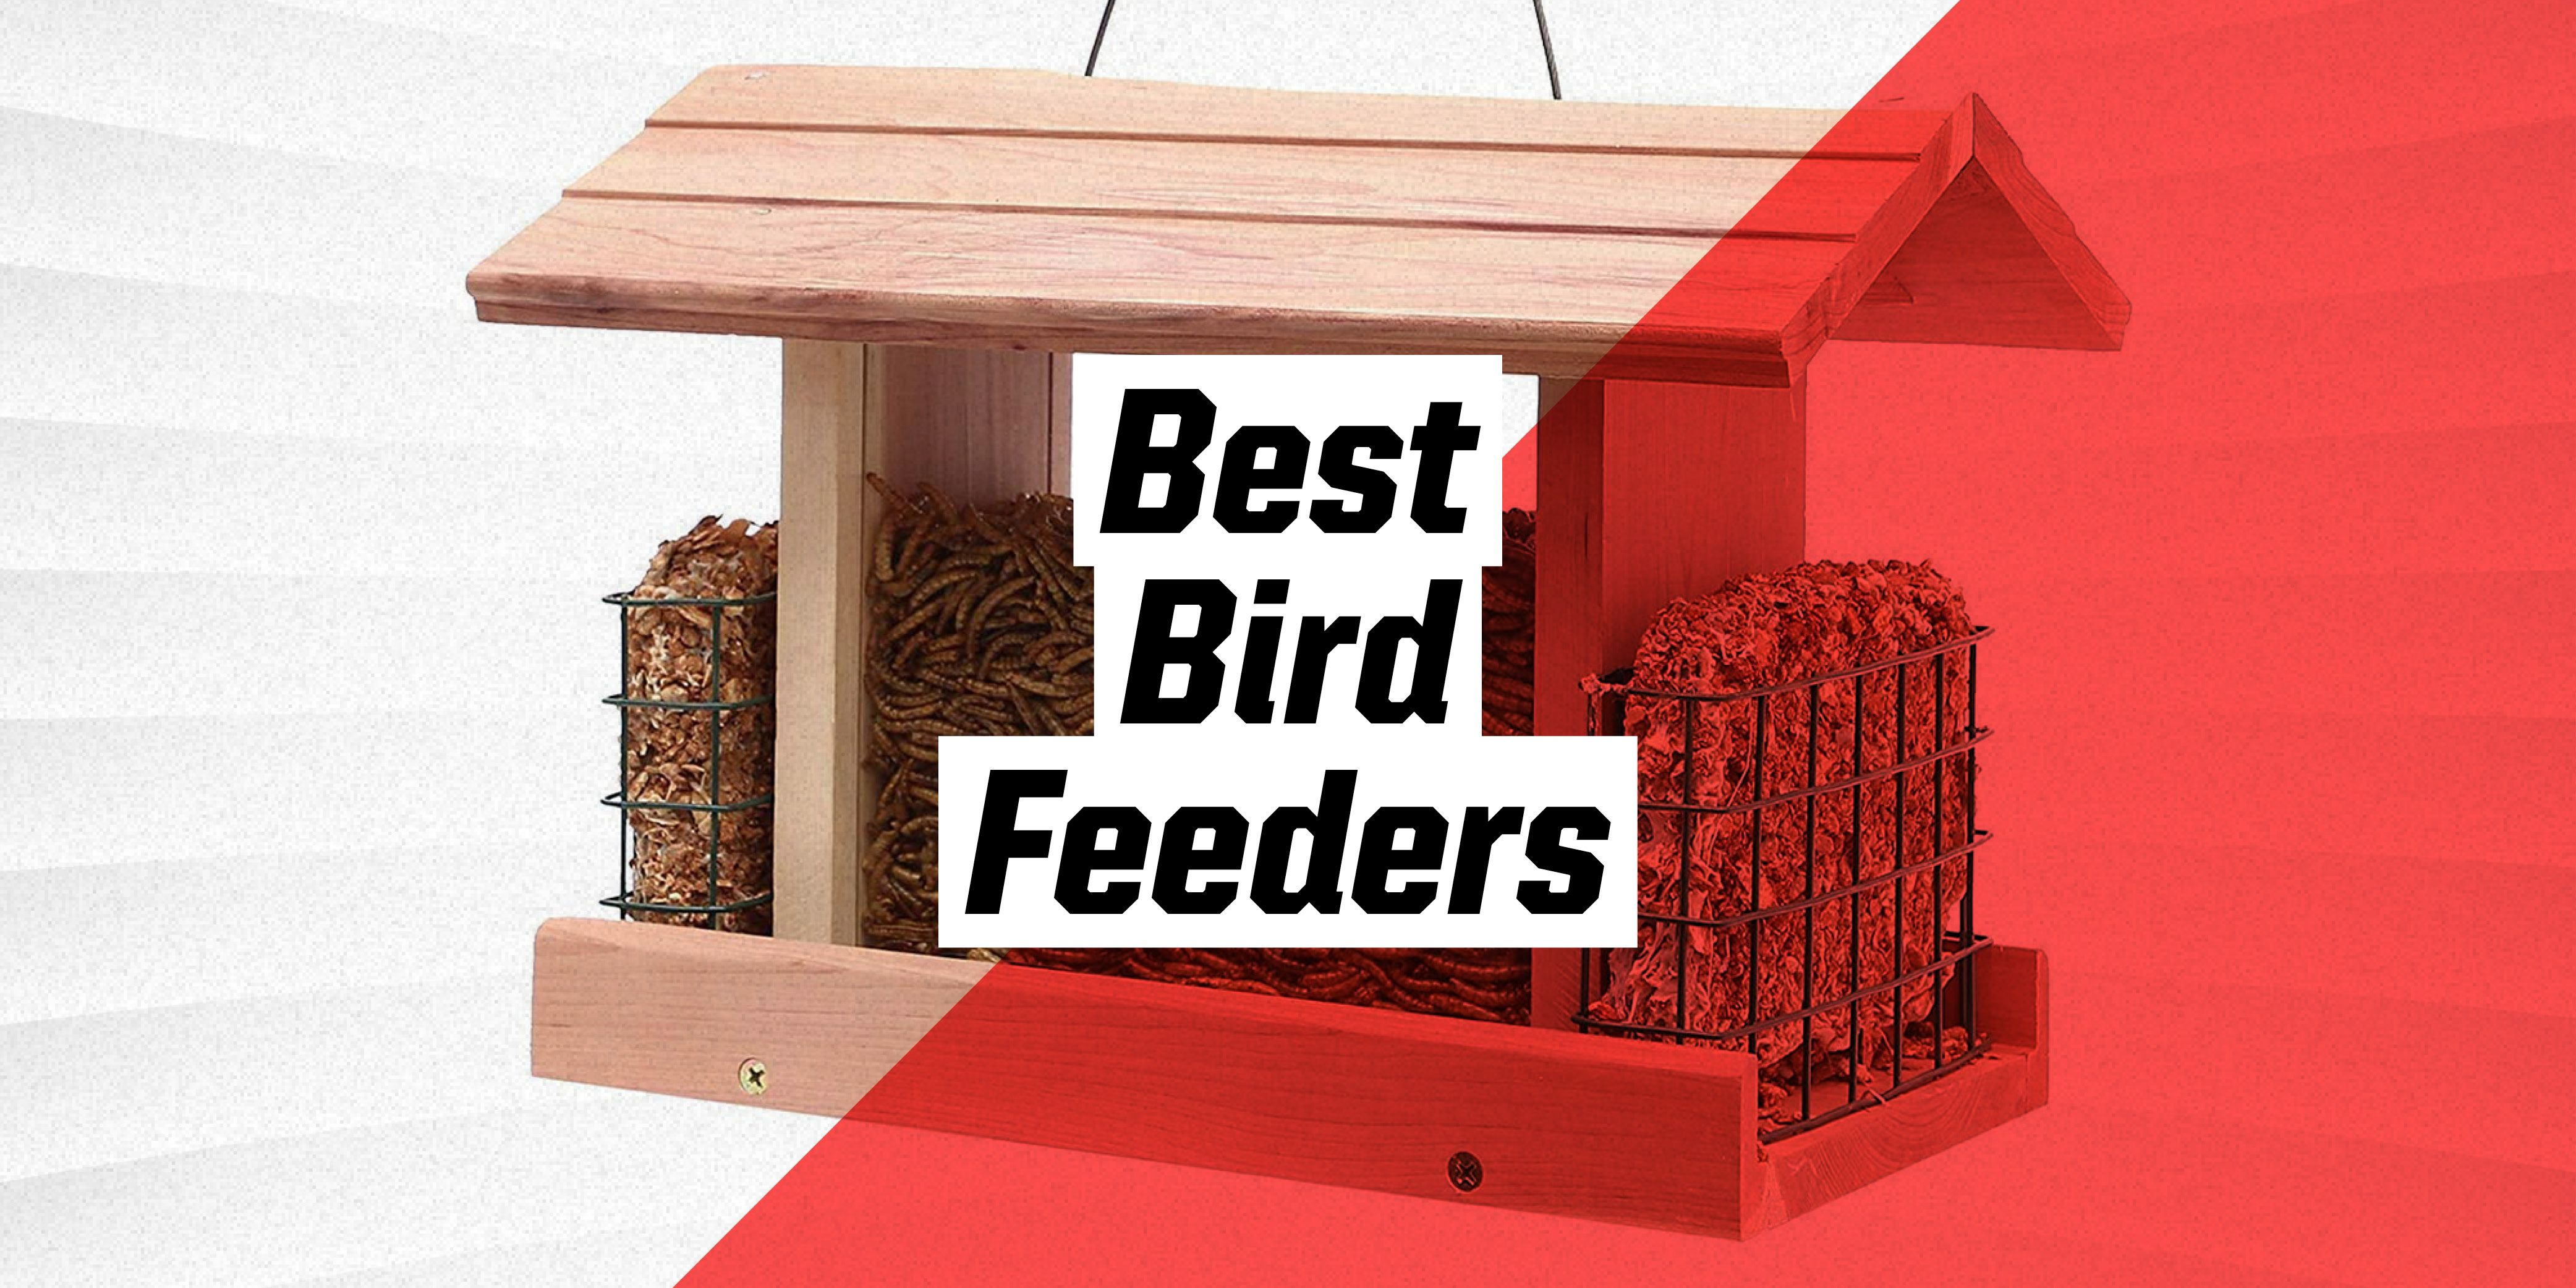 The 10 Best Bird Feeders to Buy Right Now